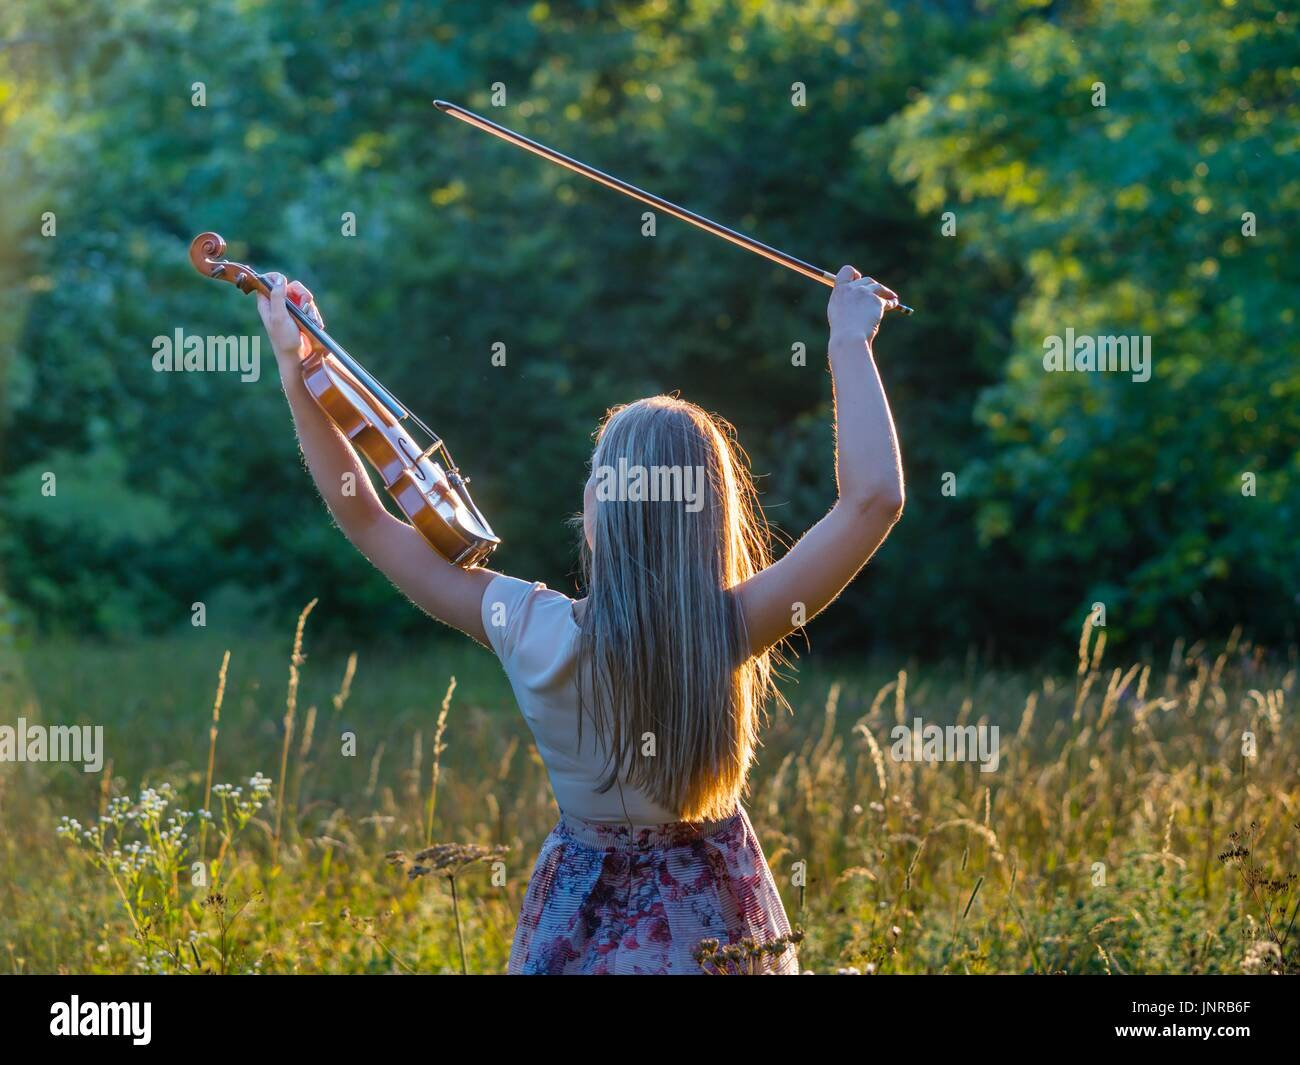 Young female violinist in nature frantic fast furious violin practice practicing sunset warm light hair highlights - Stock Image